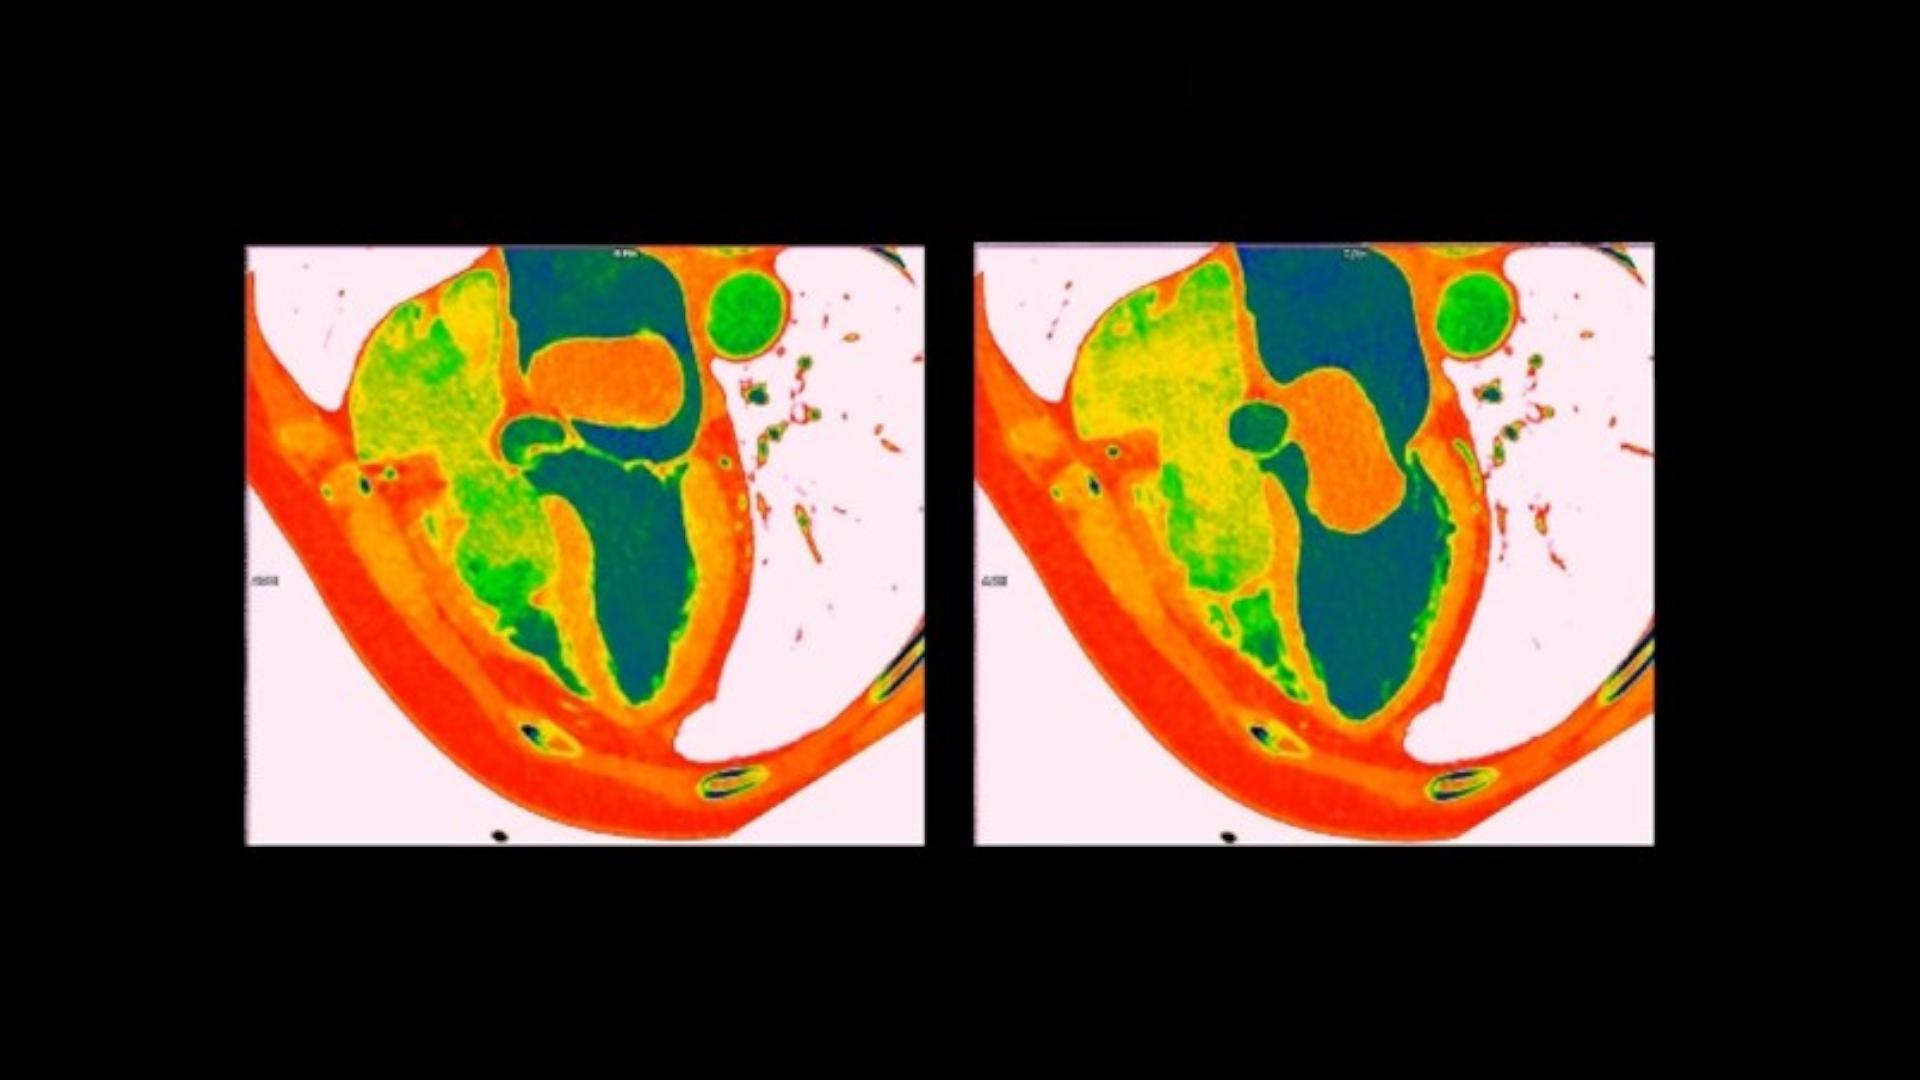 Two images captured in a movie, showing the dynamic movement of the mass and the heart, demonstrate that the mass partially prolapses into the left ventricle in diastole and returns into the left atrium completely in systole.